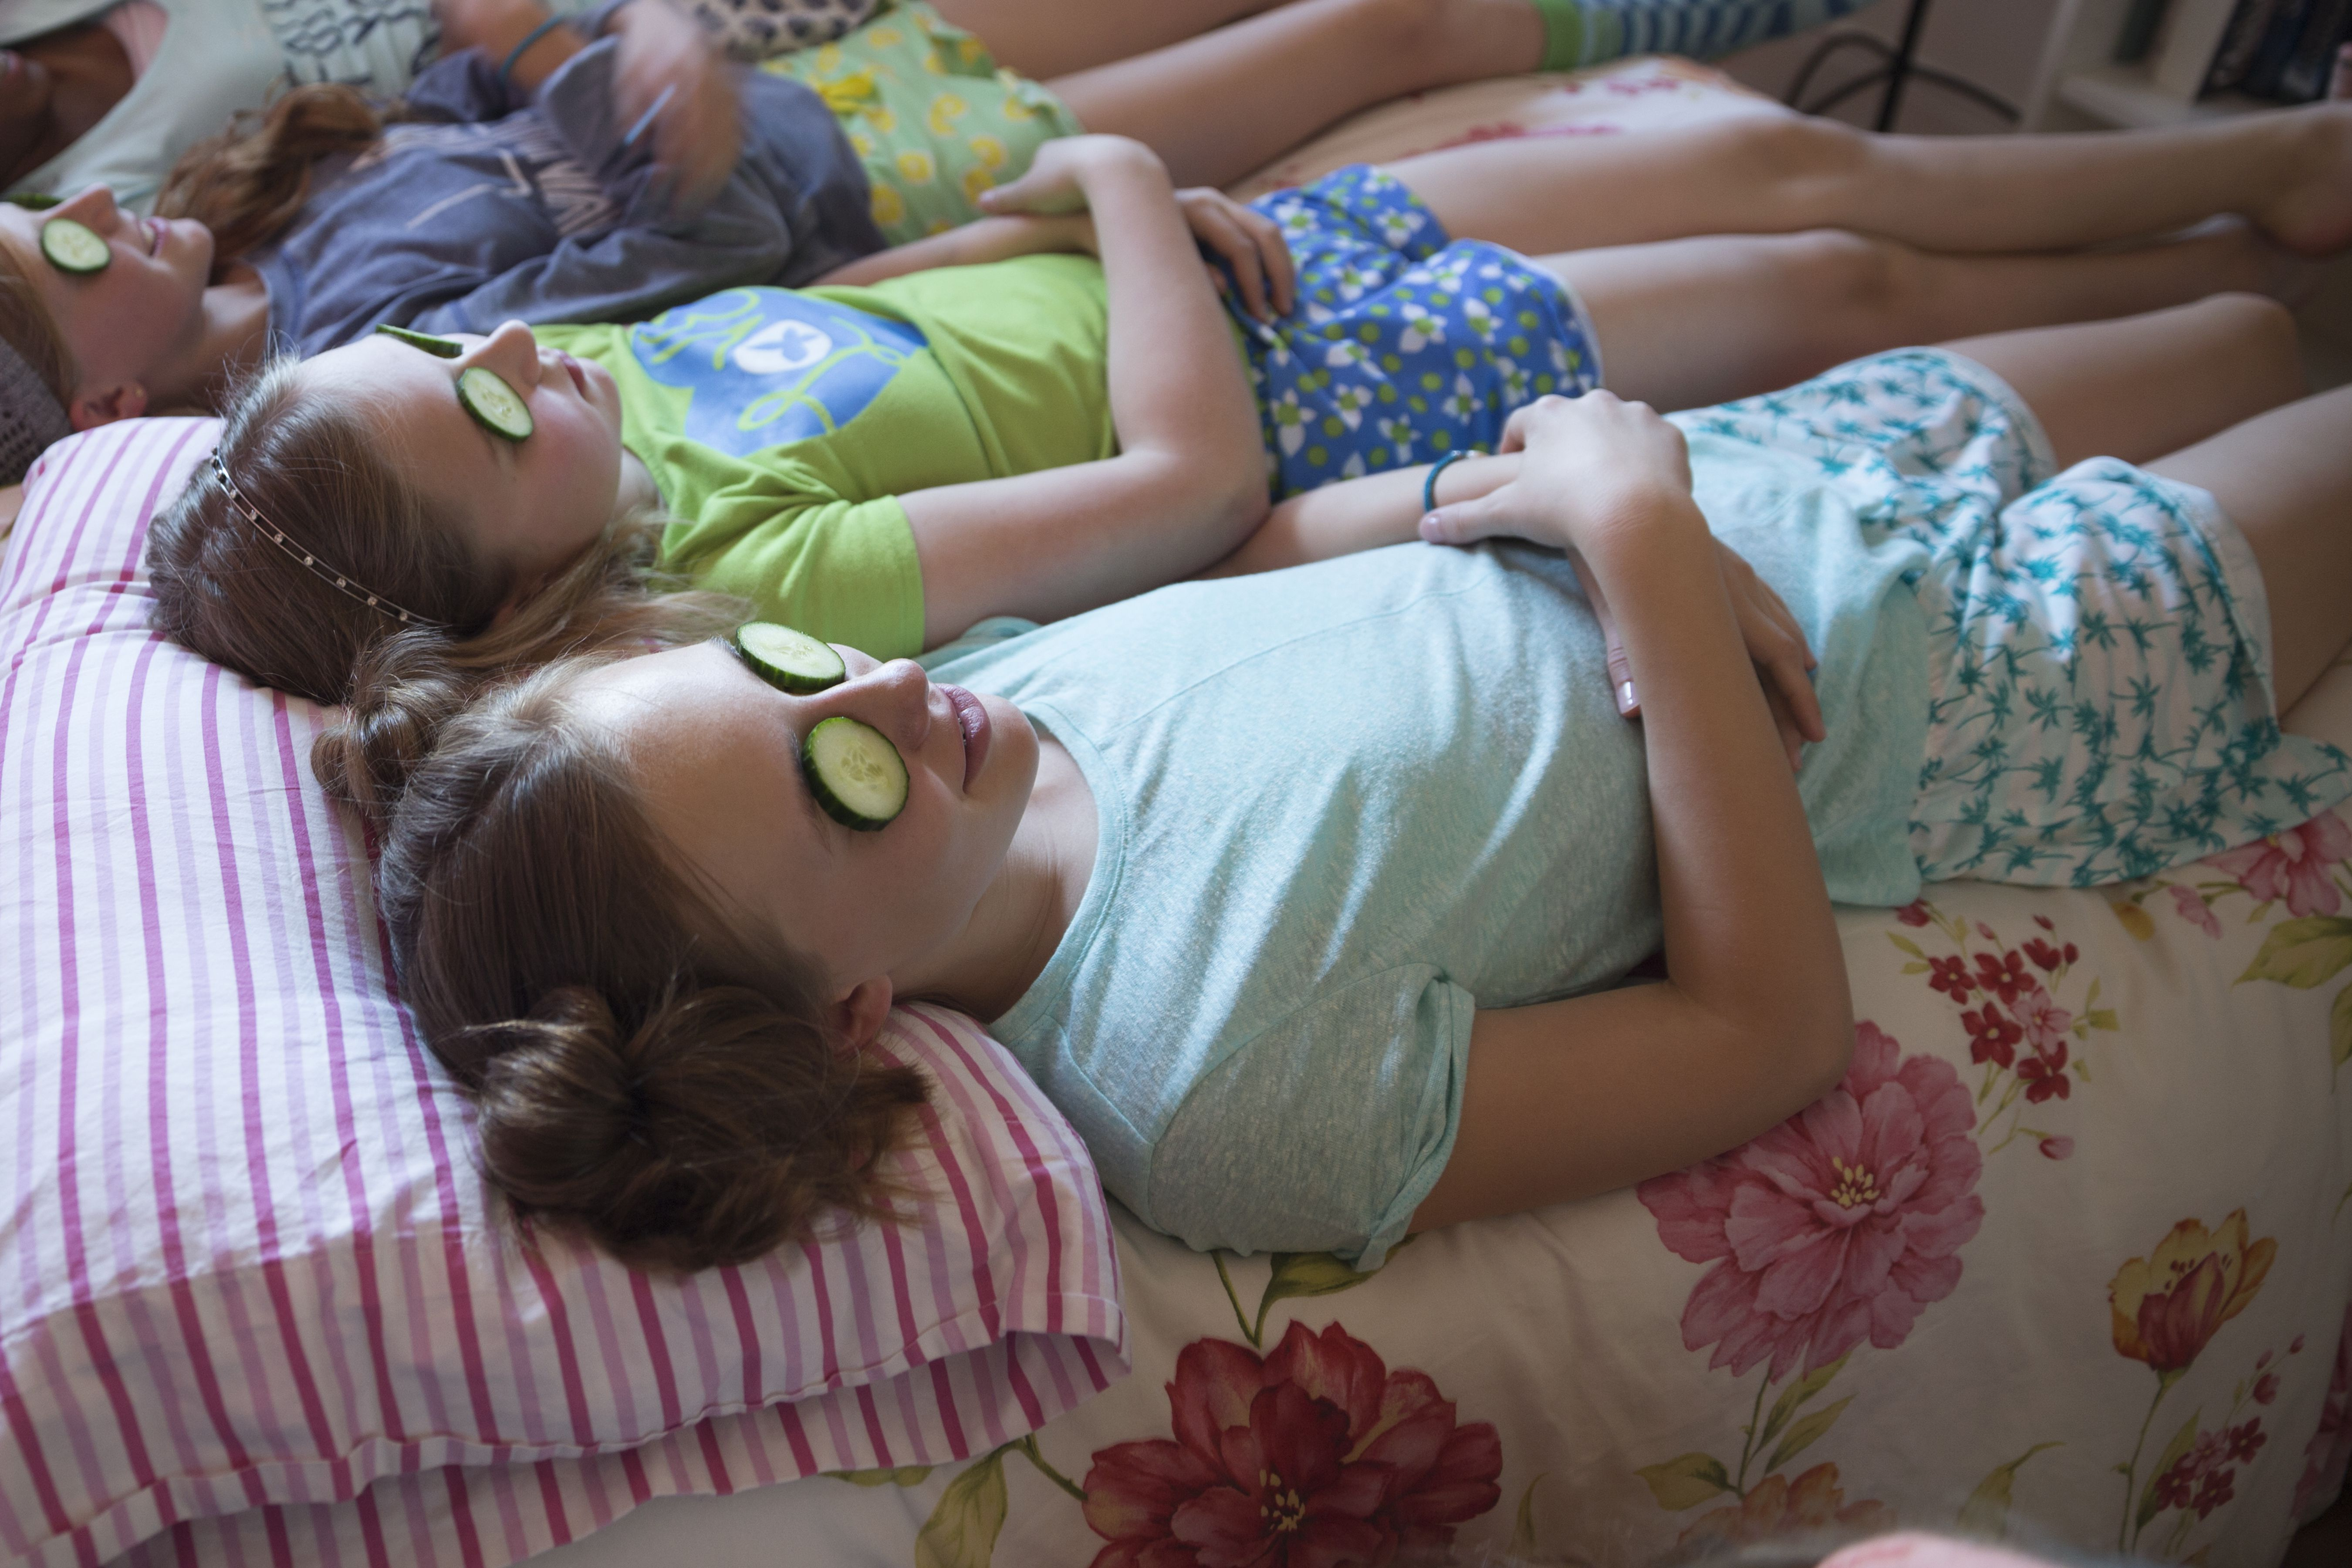 Girls relaxing with cucumbers on eyes at slumber party